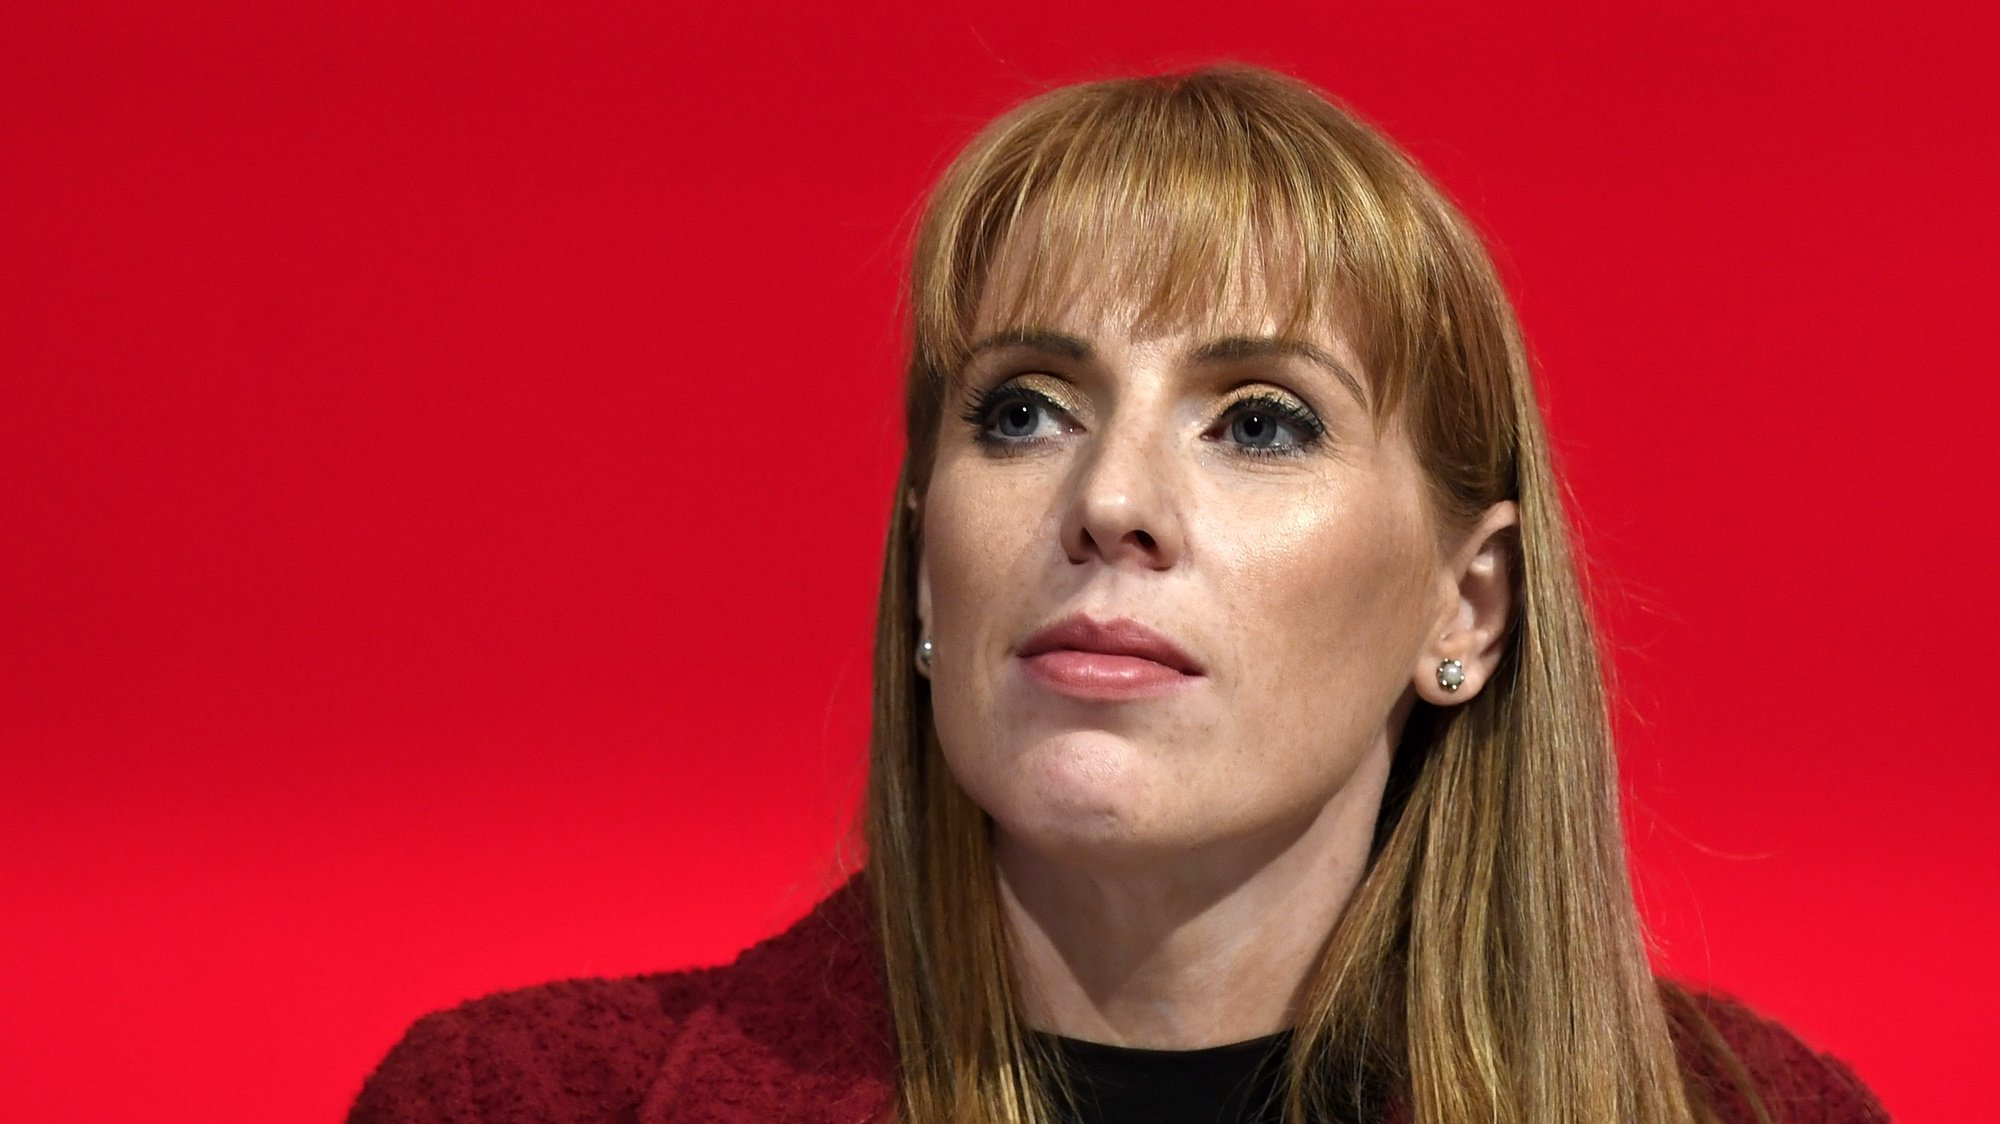 epa07043664 Shadow Education Secretary Angela Rayner attends at the Labour Party Conference in Liverpool, Britain, 24 September 2018. The annual Labour Party Conference which will run from 23 September until Wednesday 26 September.  EPA/WILL OLIVER